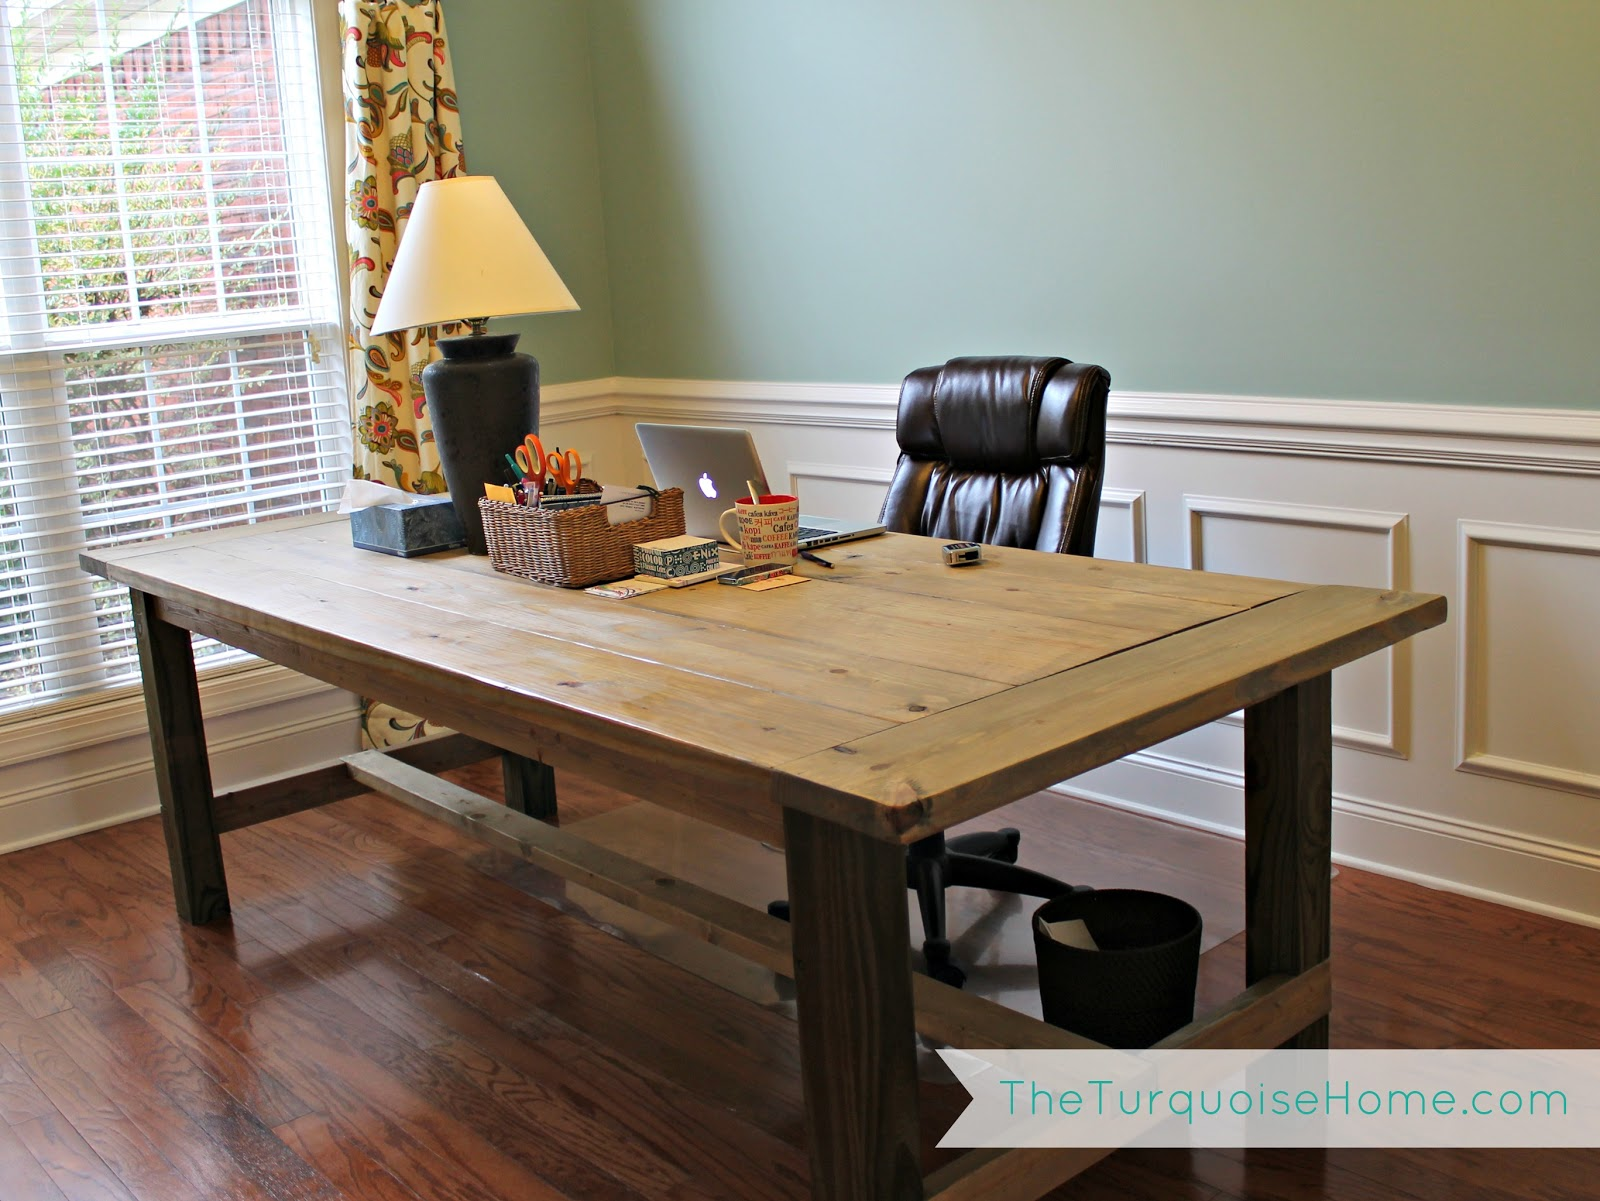 Farmhouse Dining Room Table Plans How To Hang A Heavy Mirror And Office Updates The